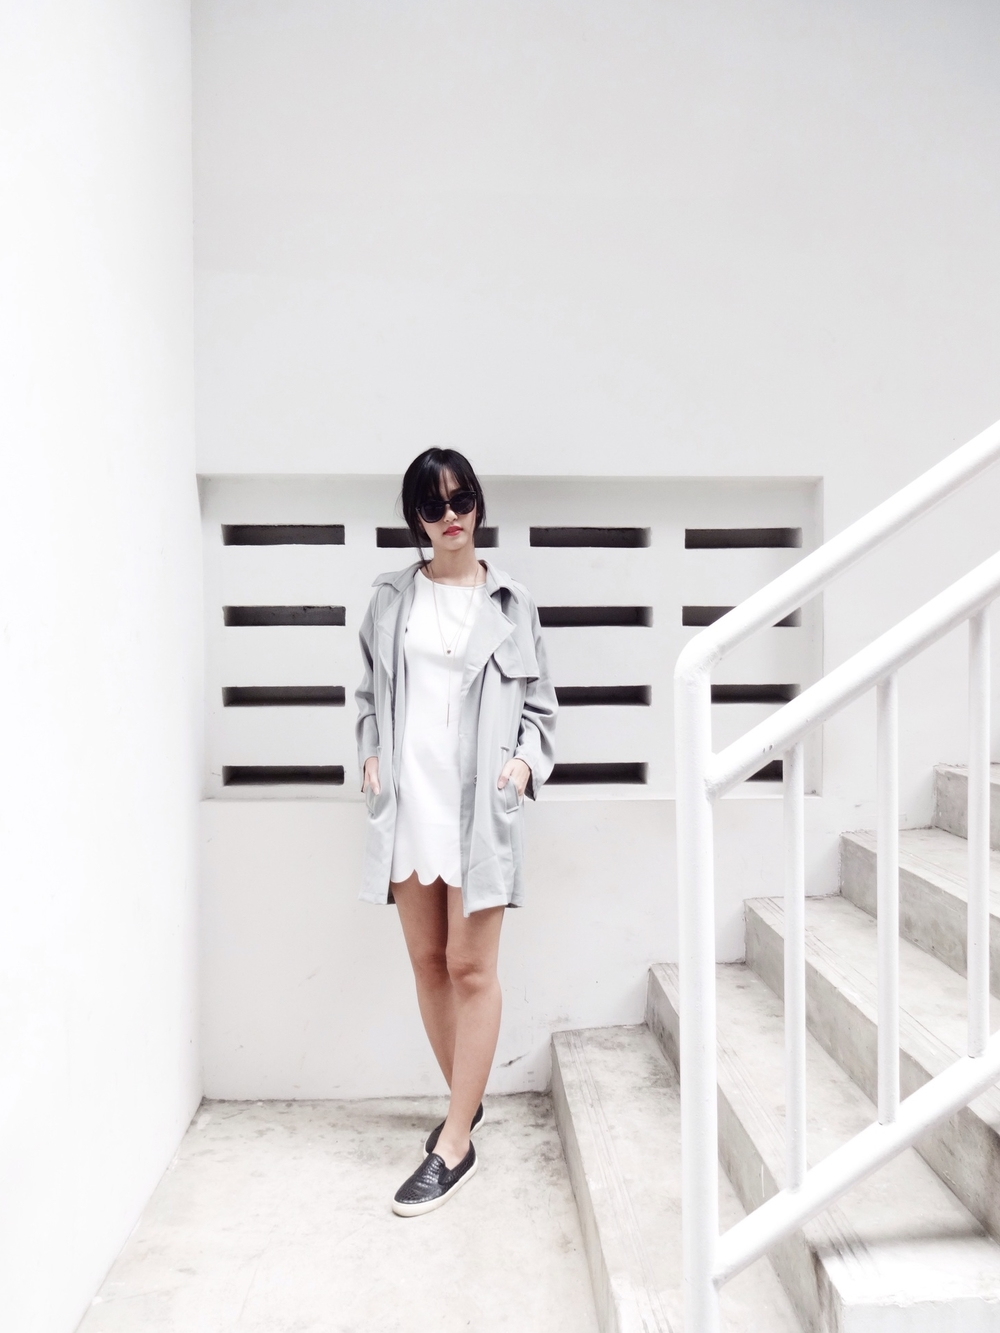 On me: Young Hungry Free grey parka,H&M shades, RoyalJunk white scallop dress, Topshop slip ons, Daniel Wellington watch